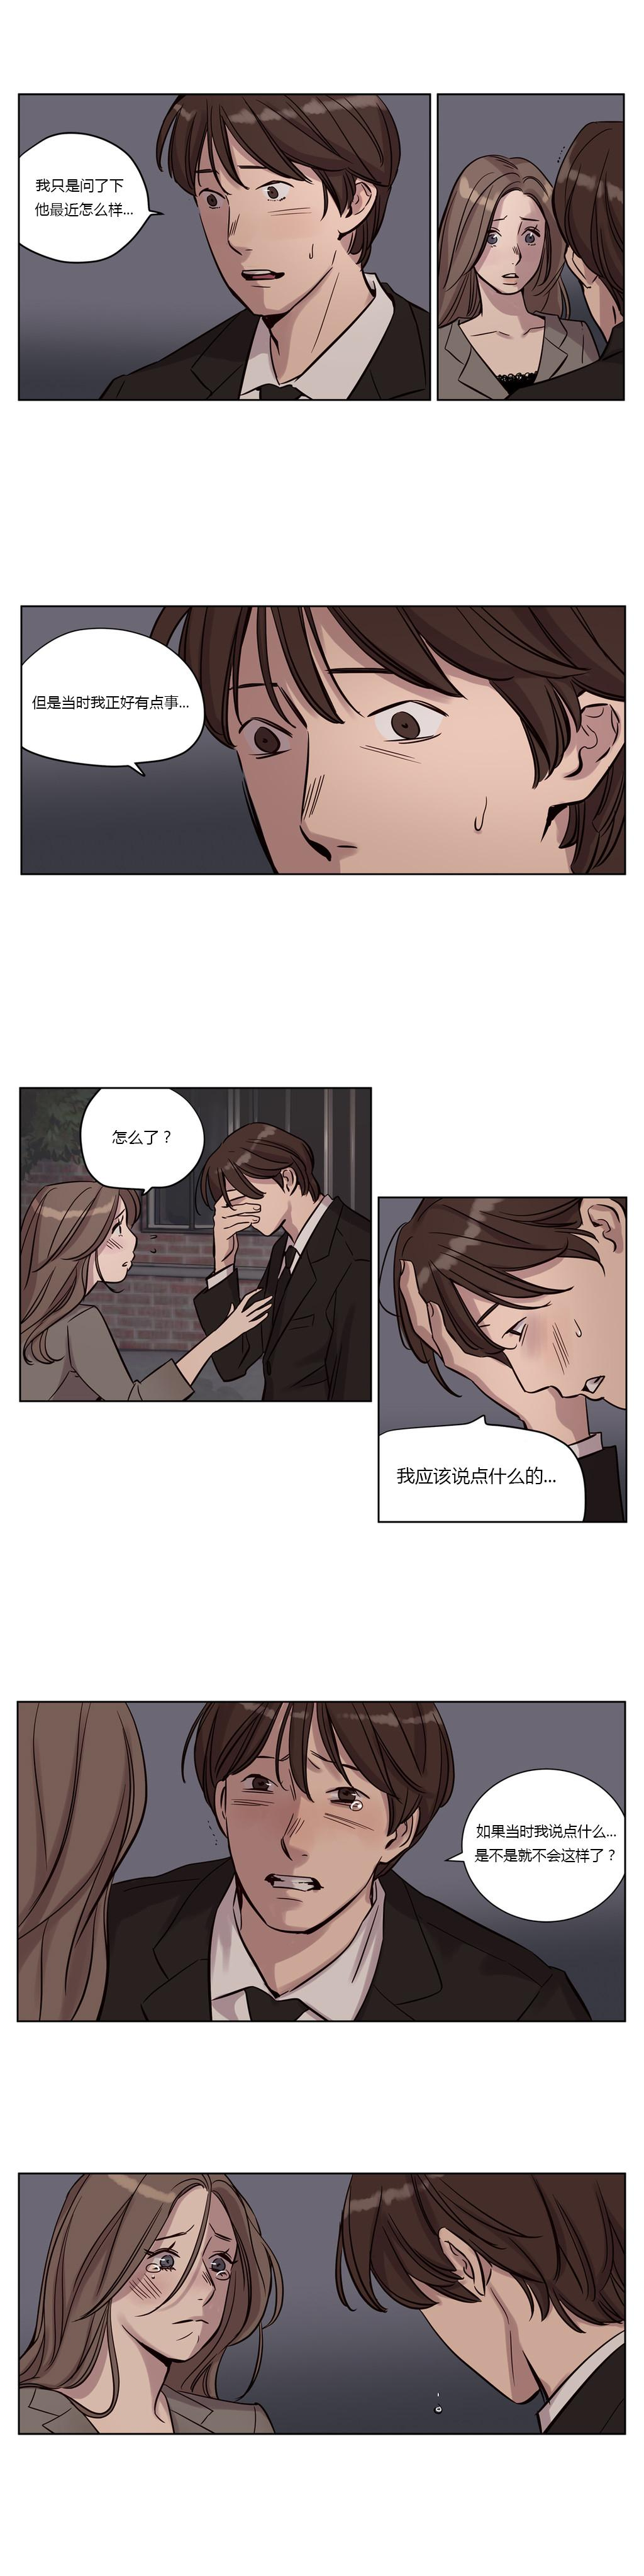 Atonement Camp Ch.0-53 179